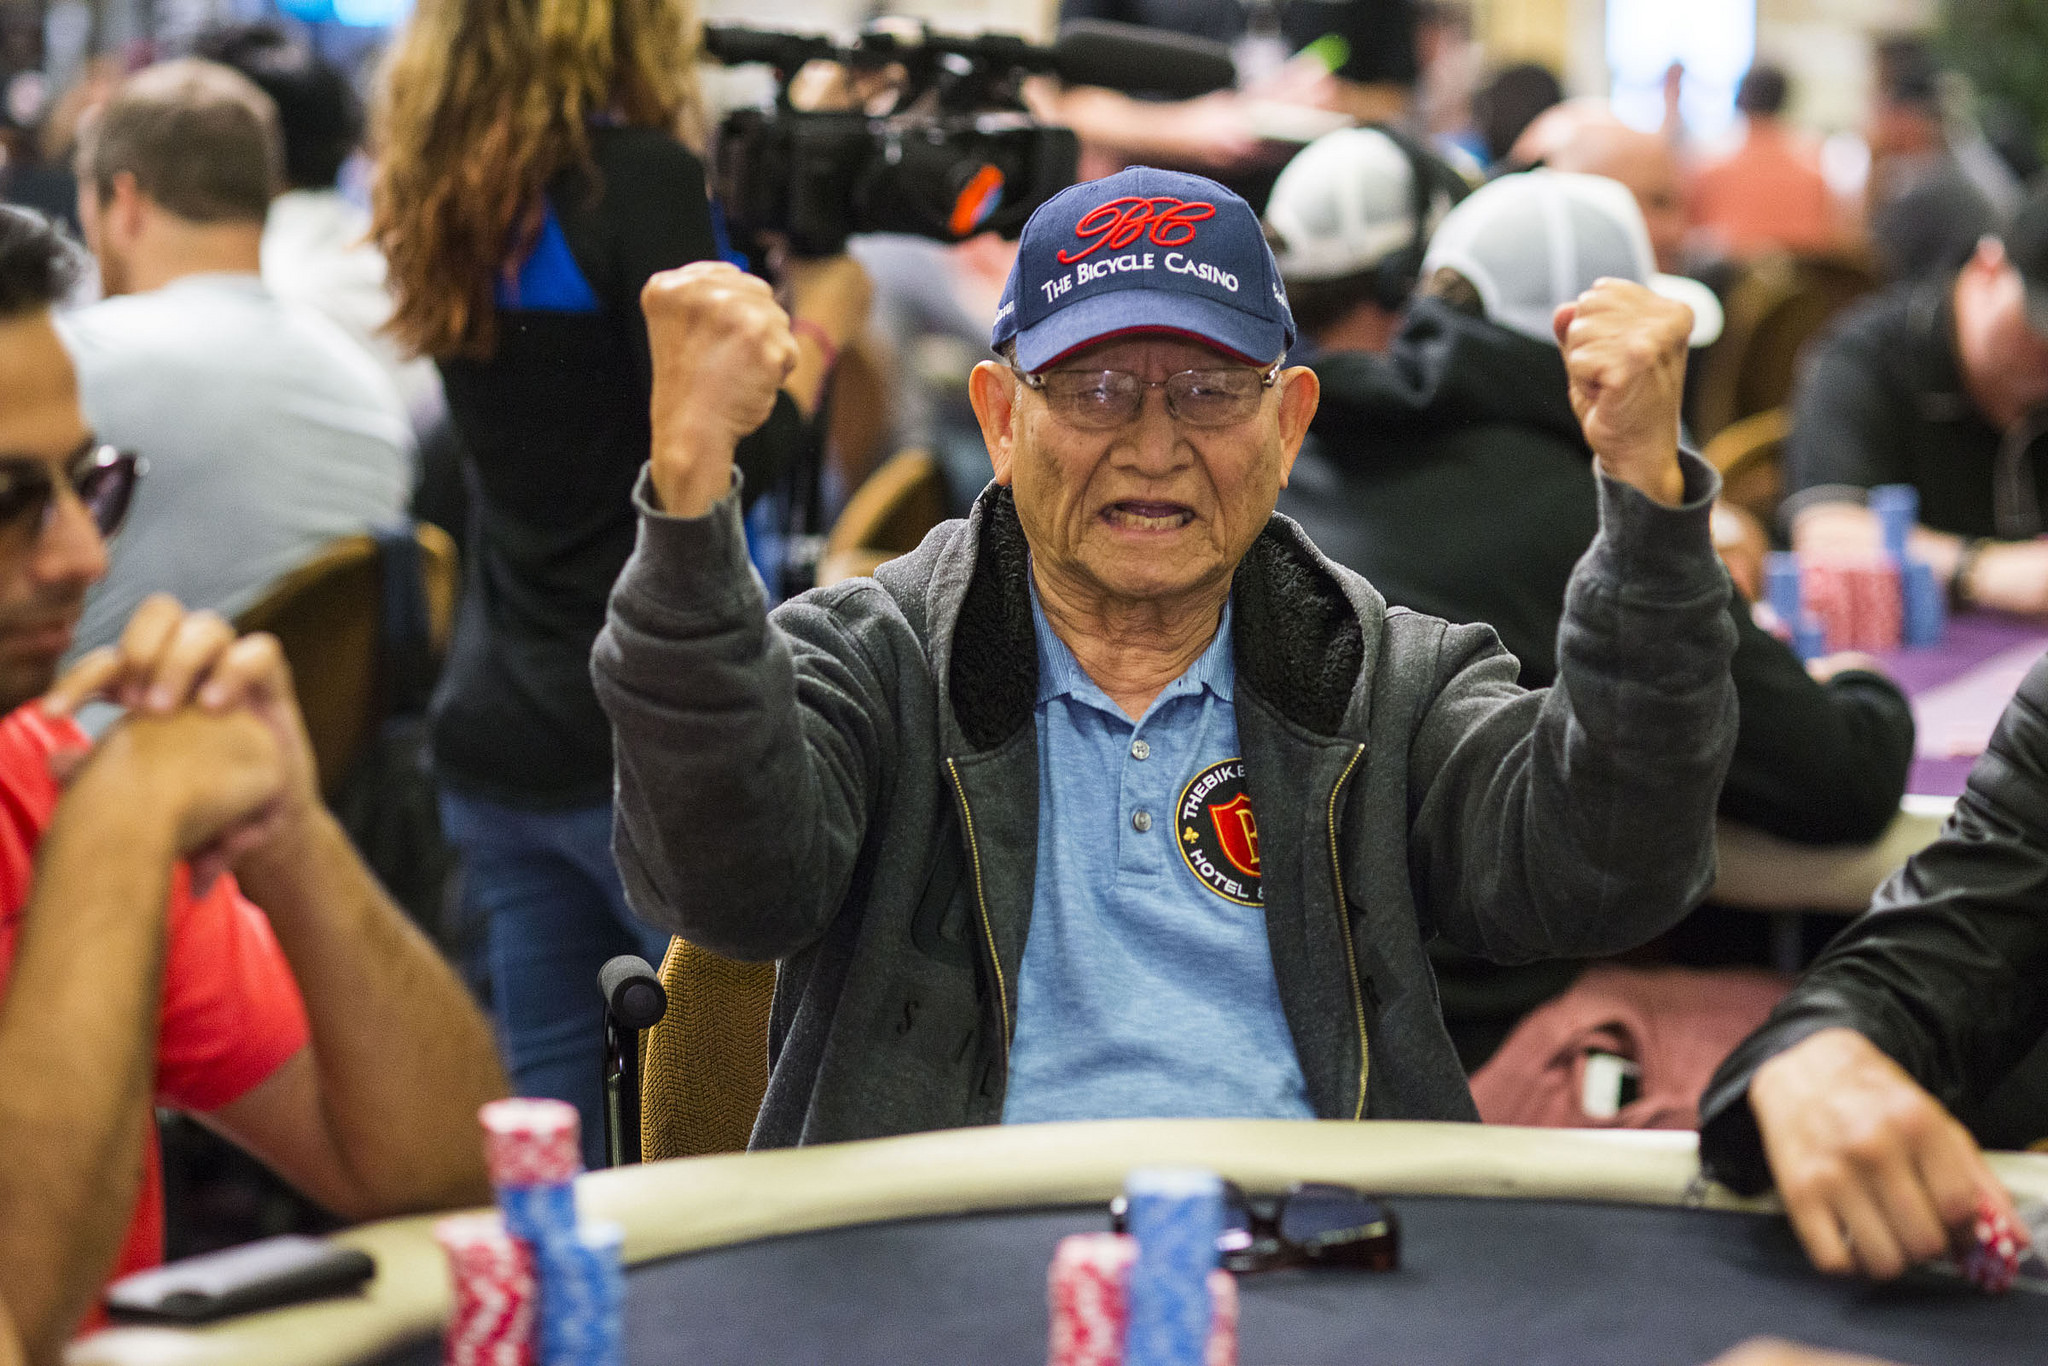 Old poker legends can a roulette dealer control where the ball lands